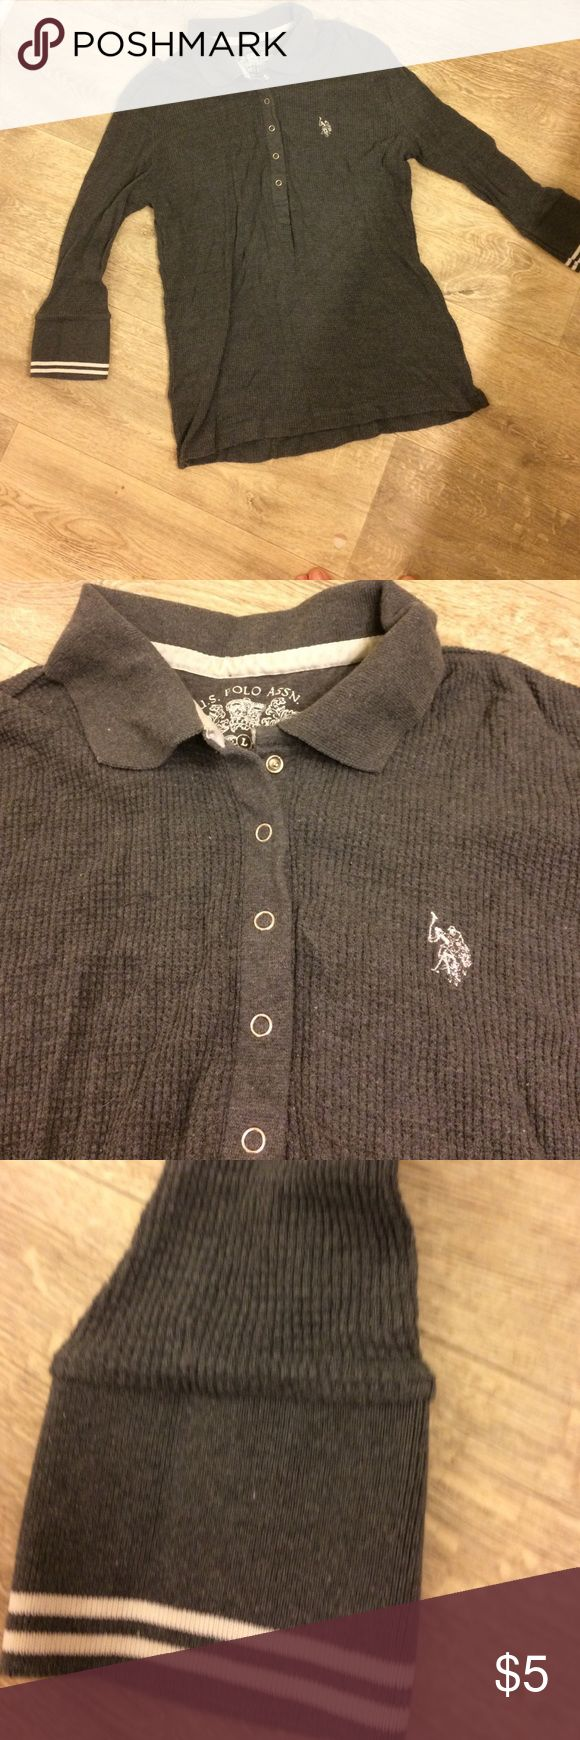 Gray Henley top by US Polo Assn 100% cotton makes this a very comfy top. Rarely worn in great condition! U.S. Polo Assn. Tops Tees - Long Sleeve